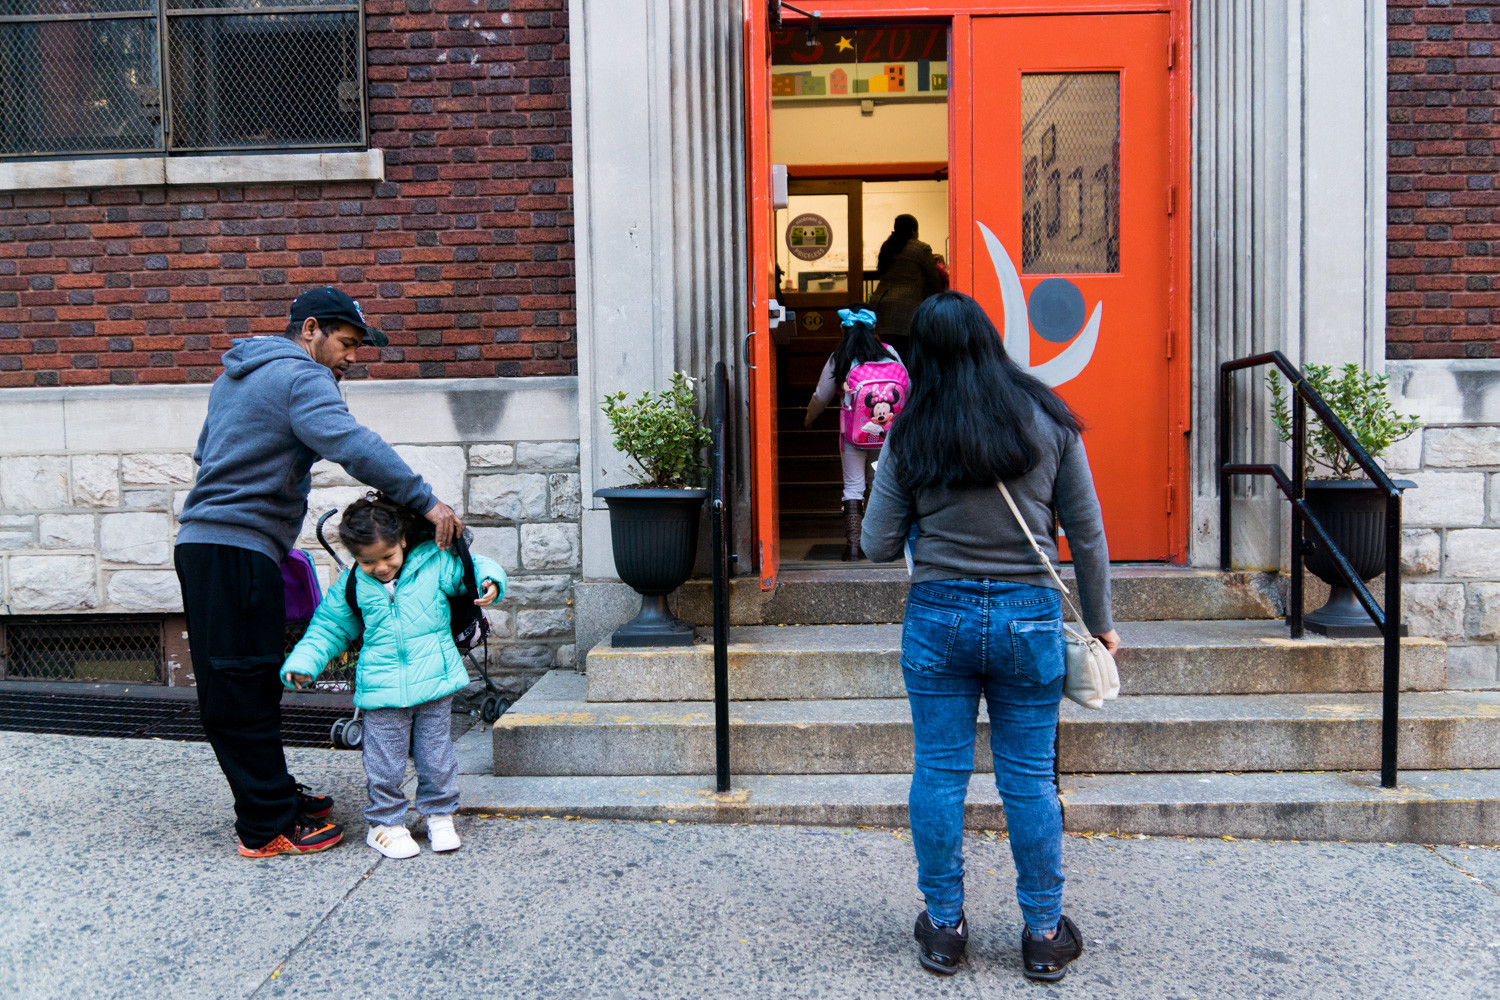 Parents drop off their children at the start of the school day at P.S. 207, which serves kindergarten through second grade. There is a proposal to expand P.S. 207 so students could remain at the school through fifth grade.